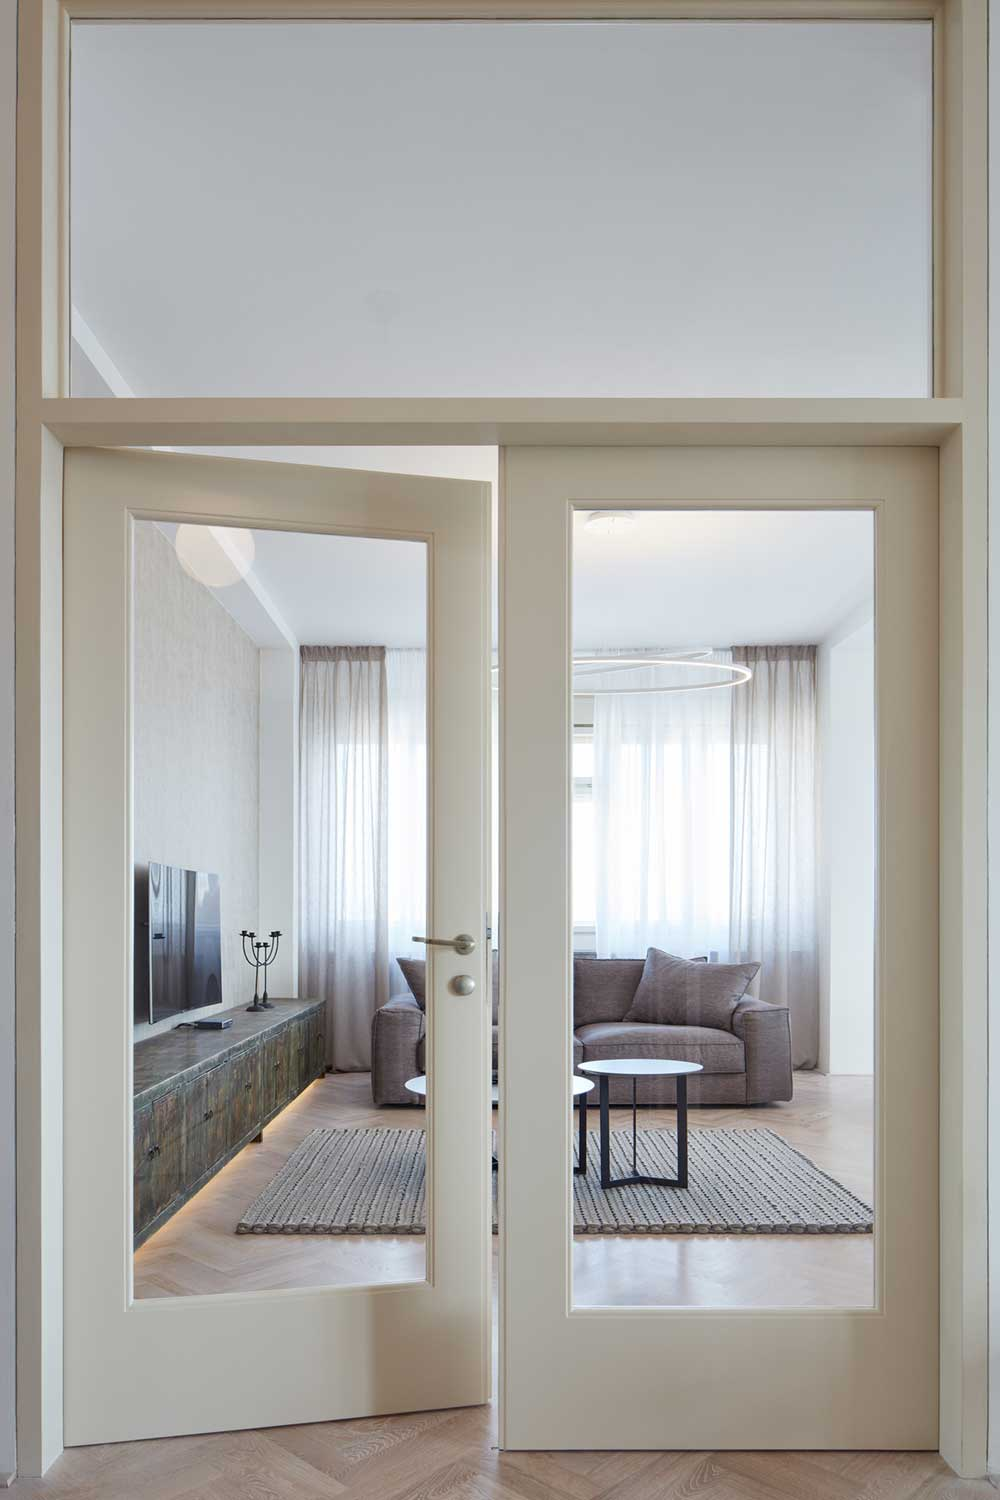 Doors leading to living room